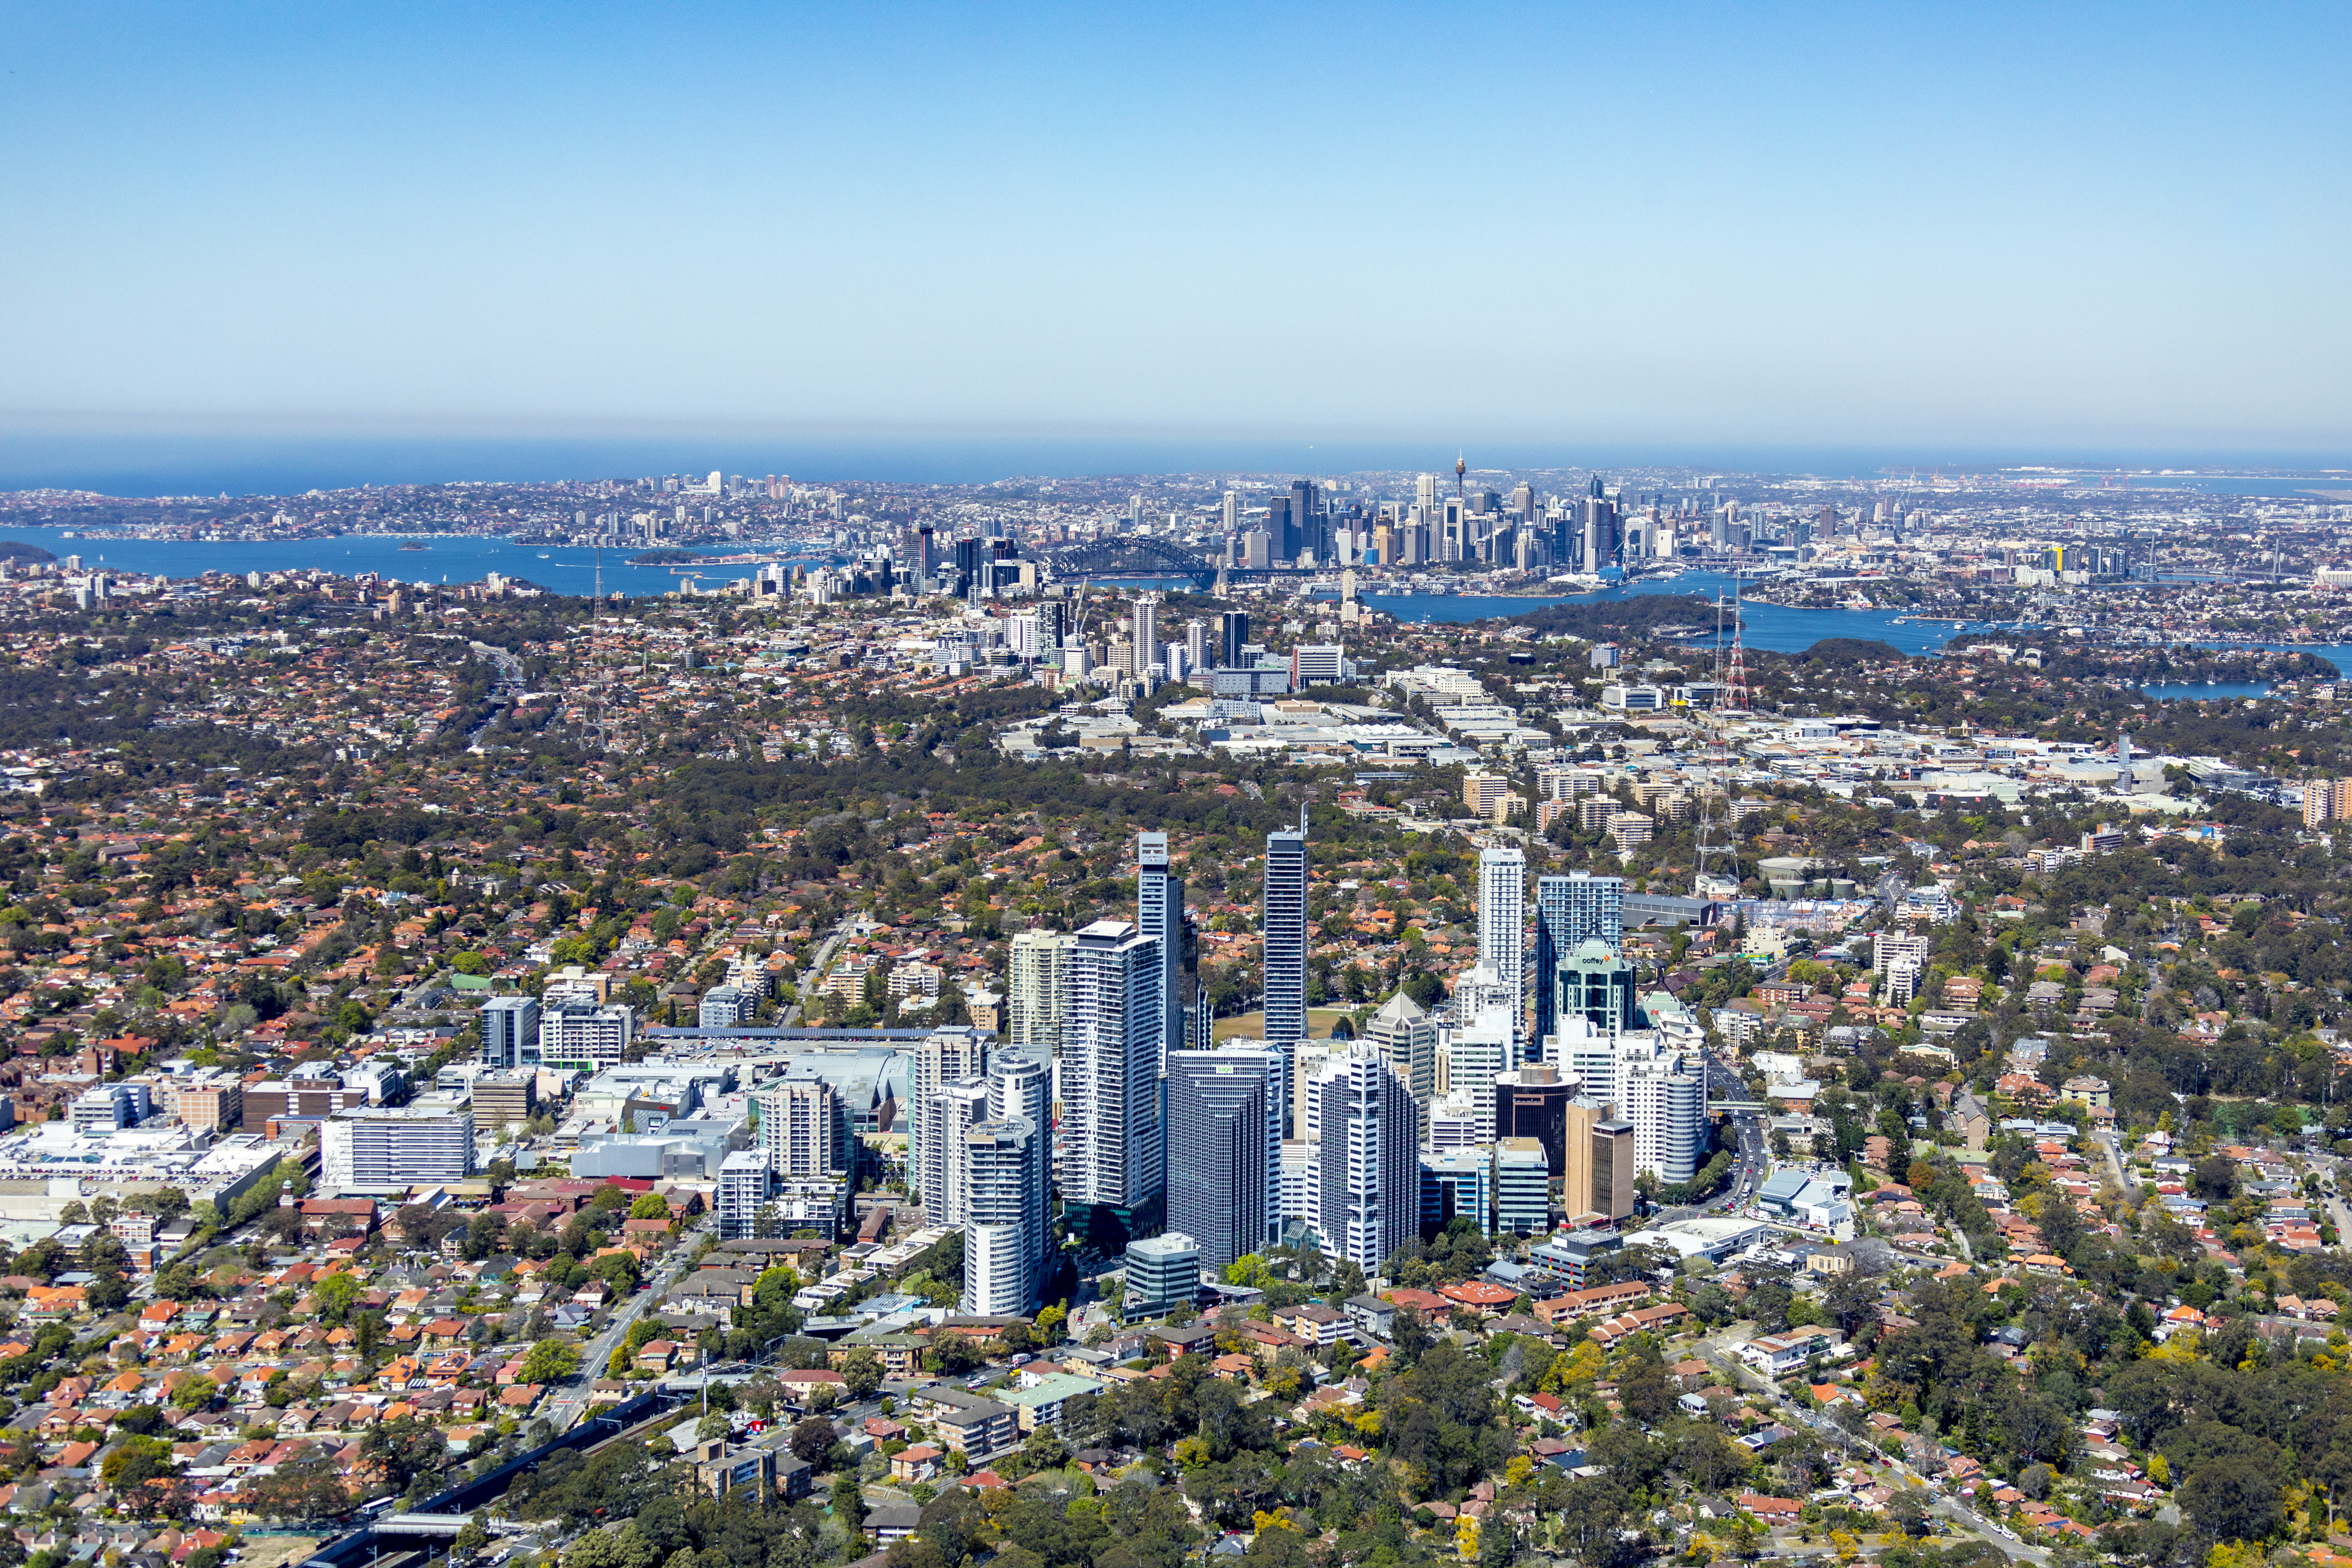 Aerial_View_Chatswood_to_Sydney_CBD.jpg